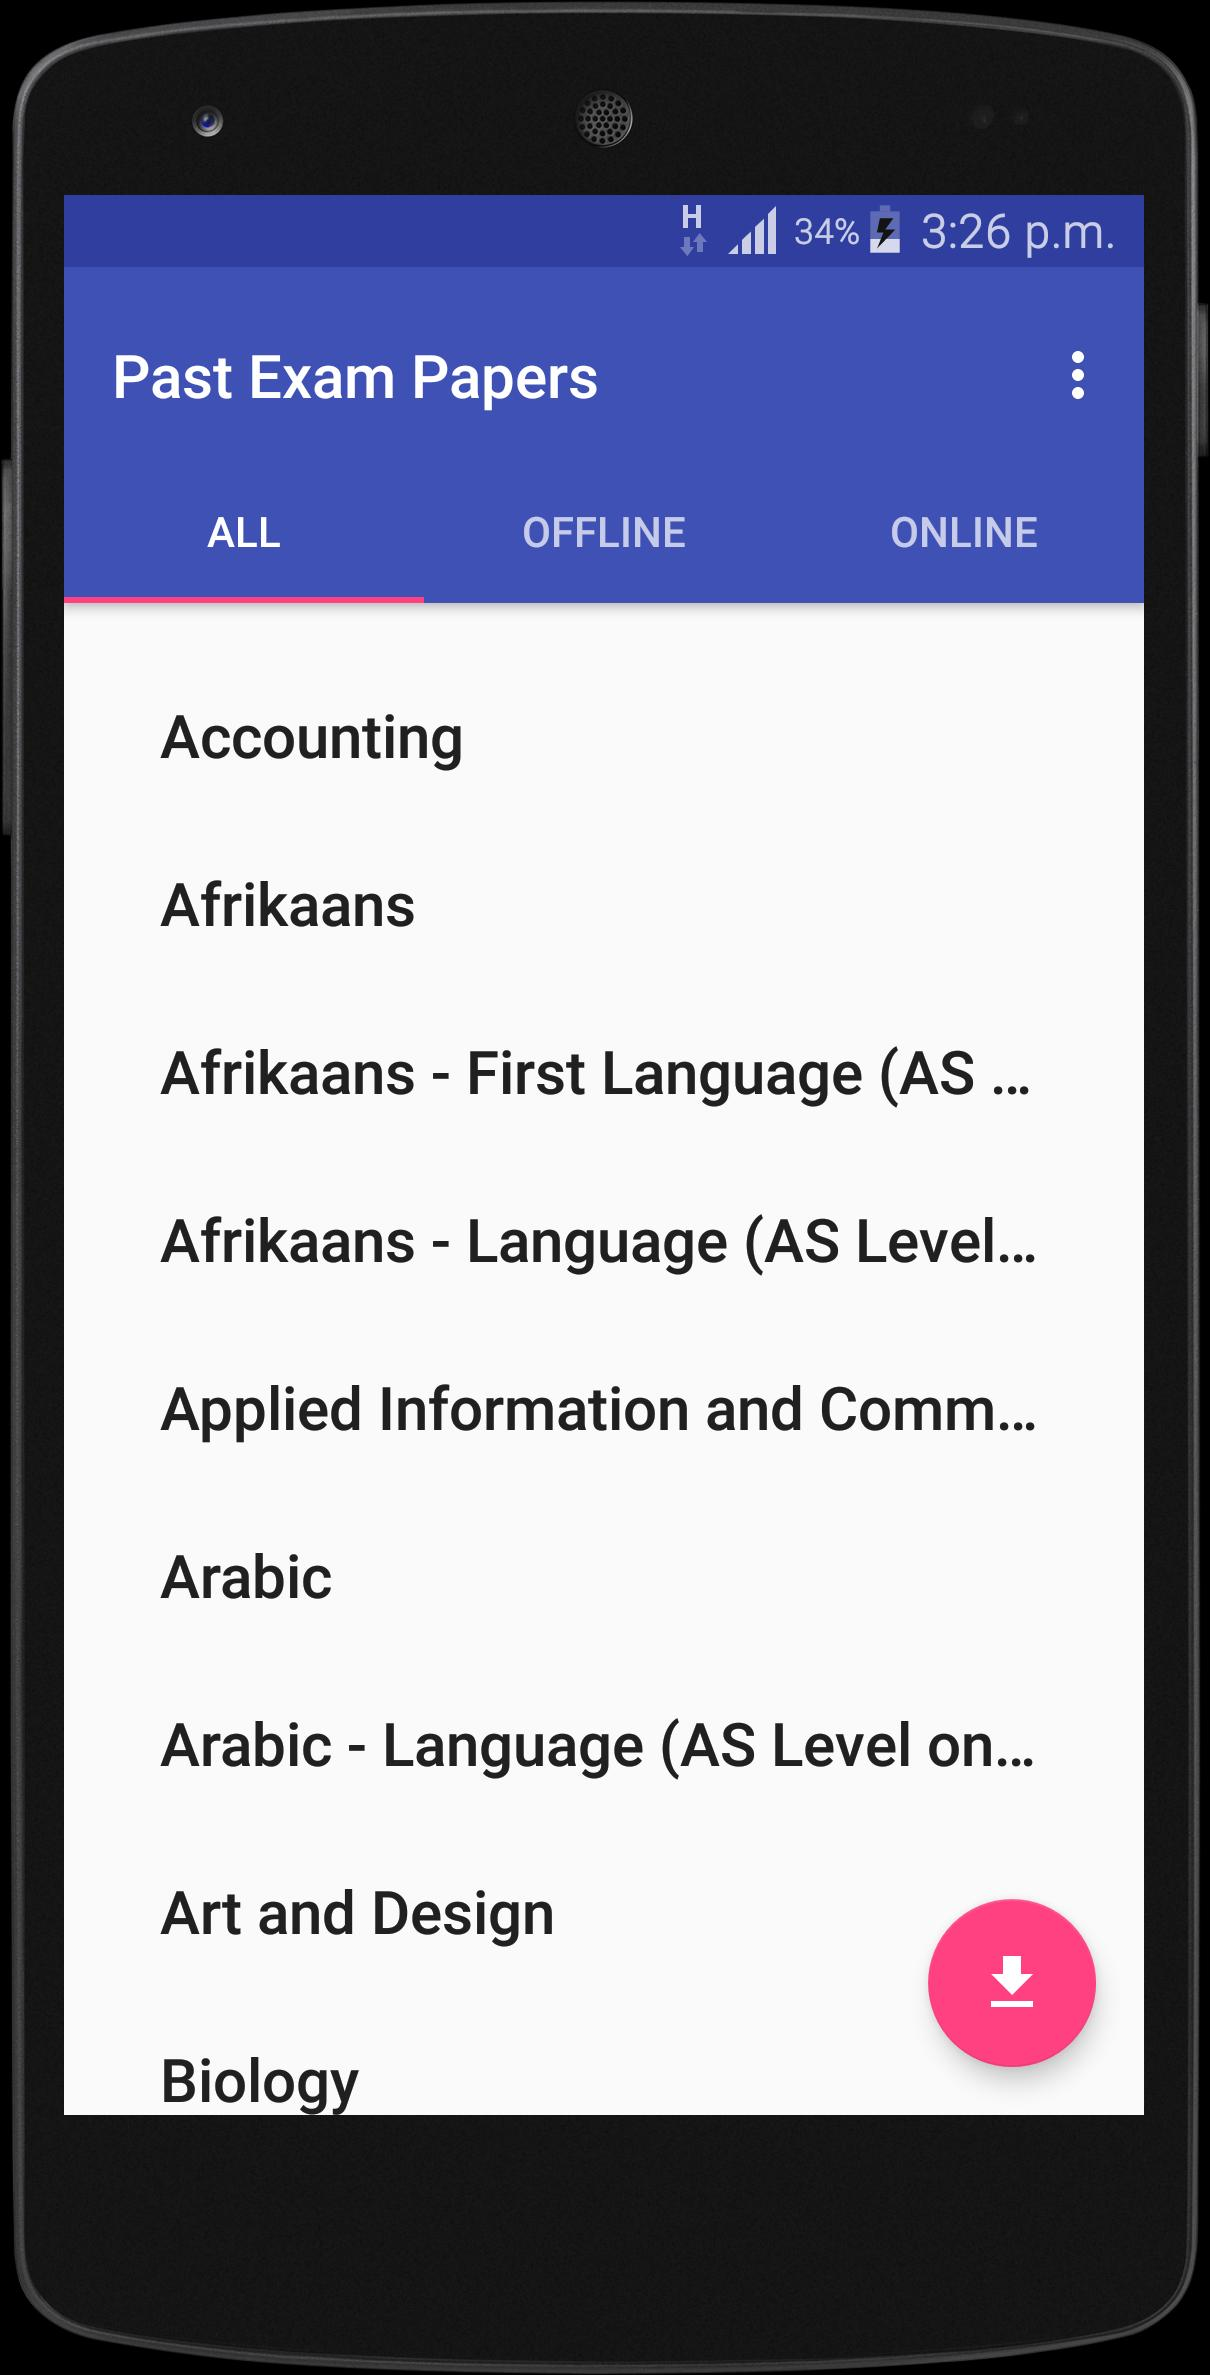 Past Exam Papers for Android - APK Download